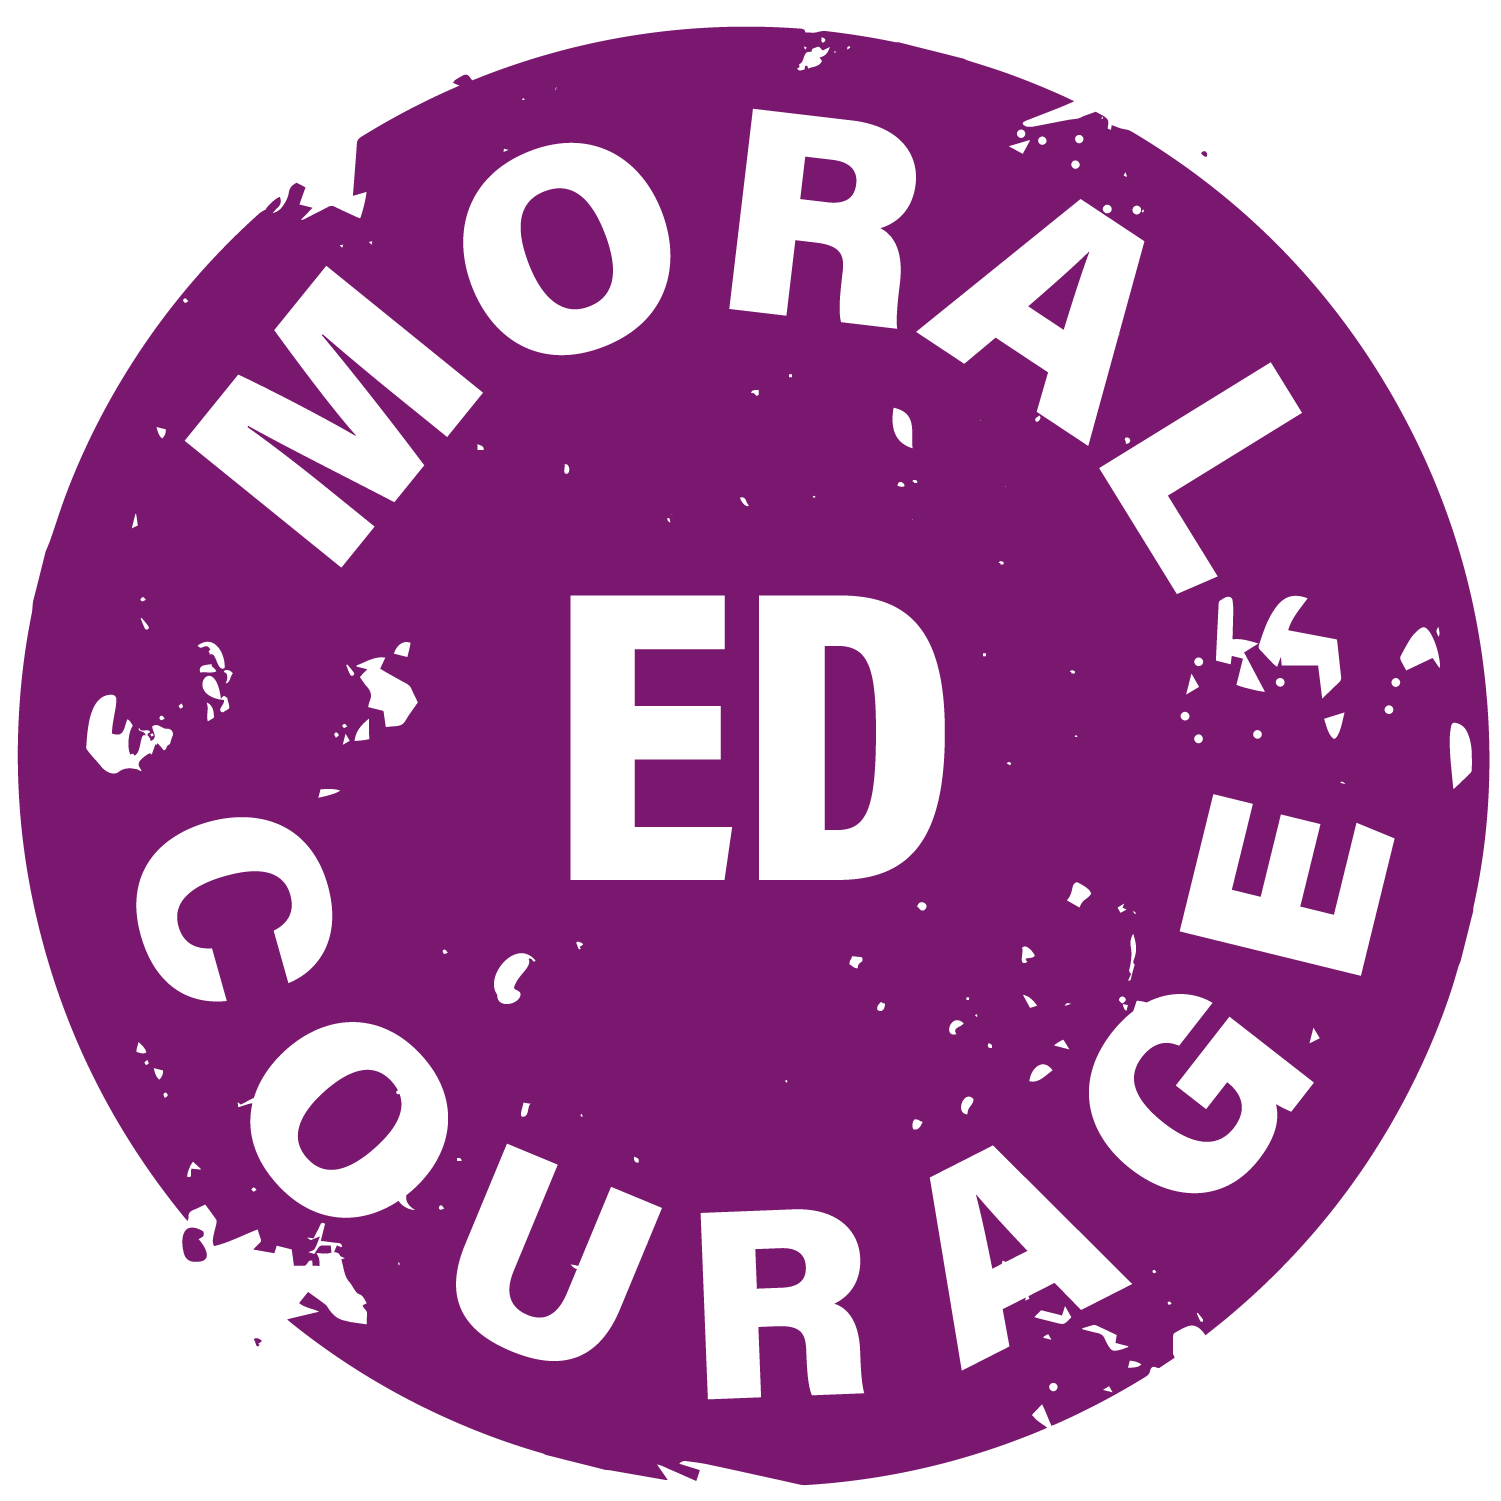 Moral Courage ED Releases Online Course to Achieve Diversity Without Division